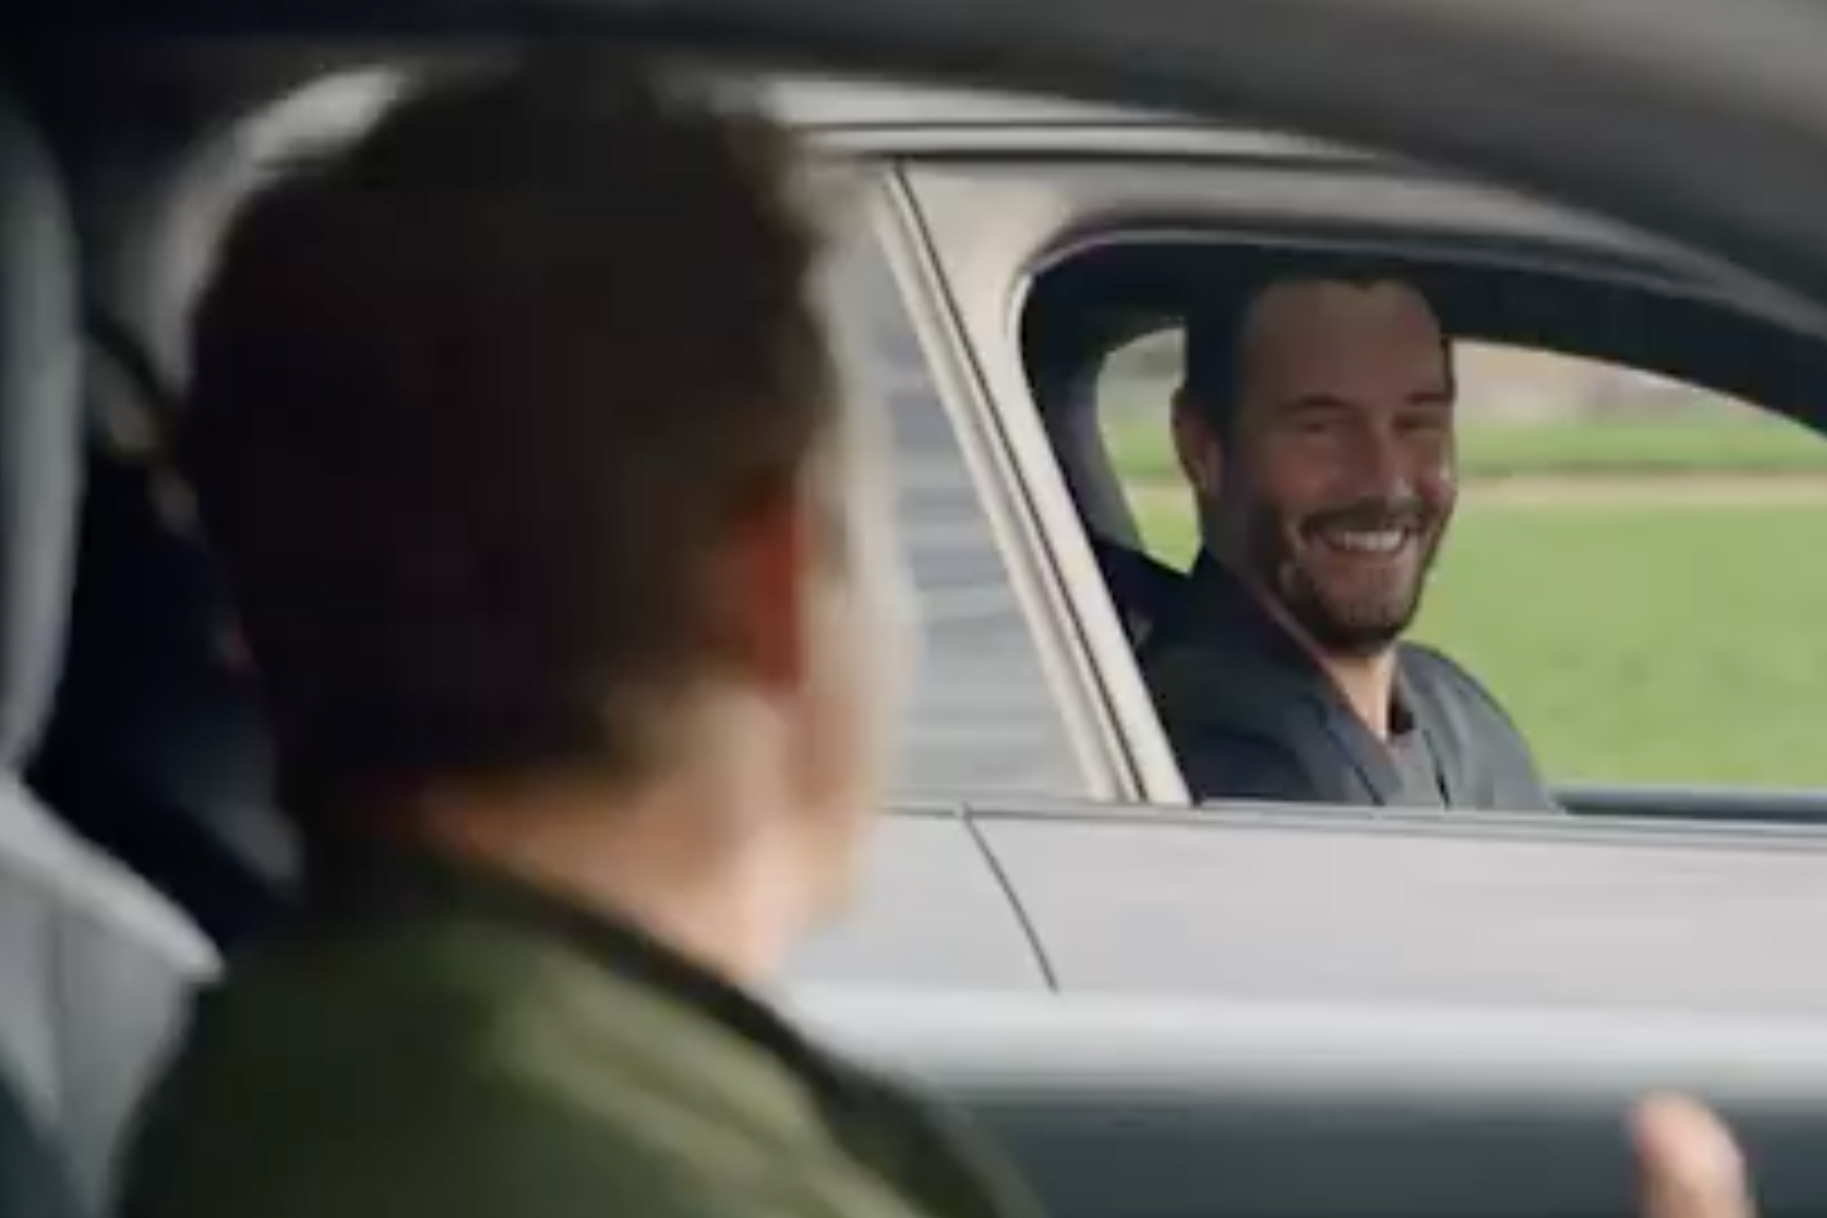 'Bill and Ted' stars Keanu Reeves and Alex Winter go on a new adventure for Porsche